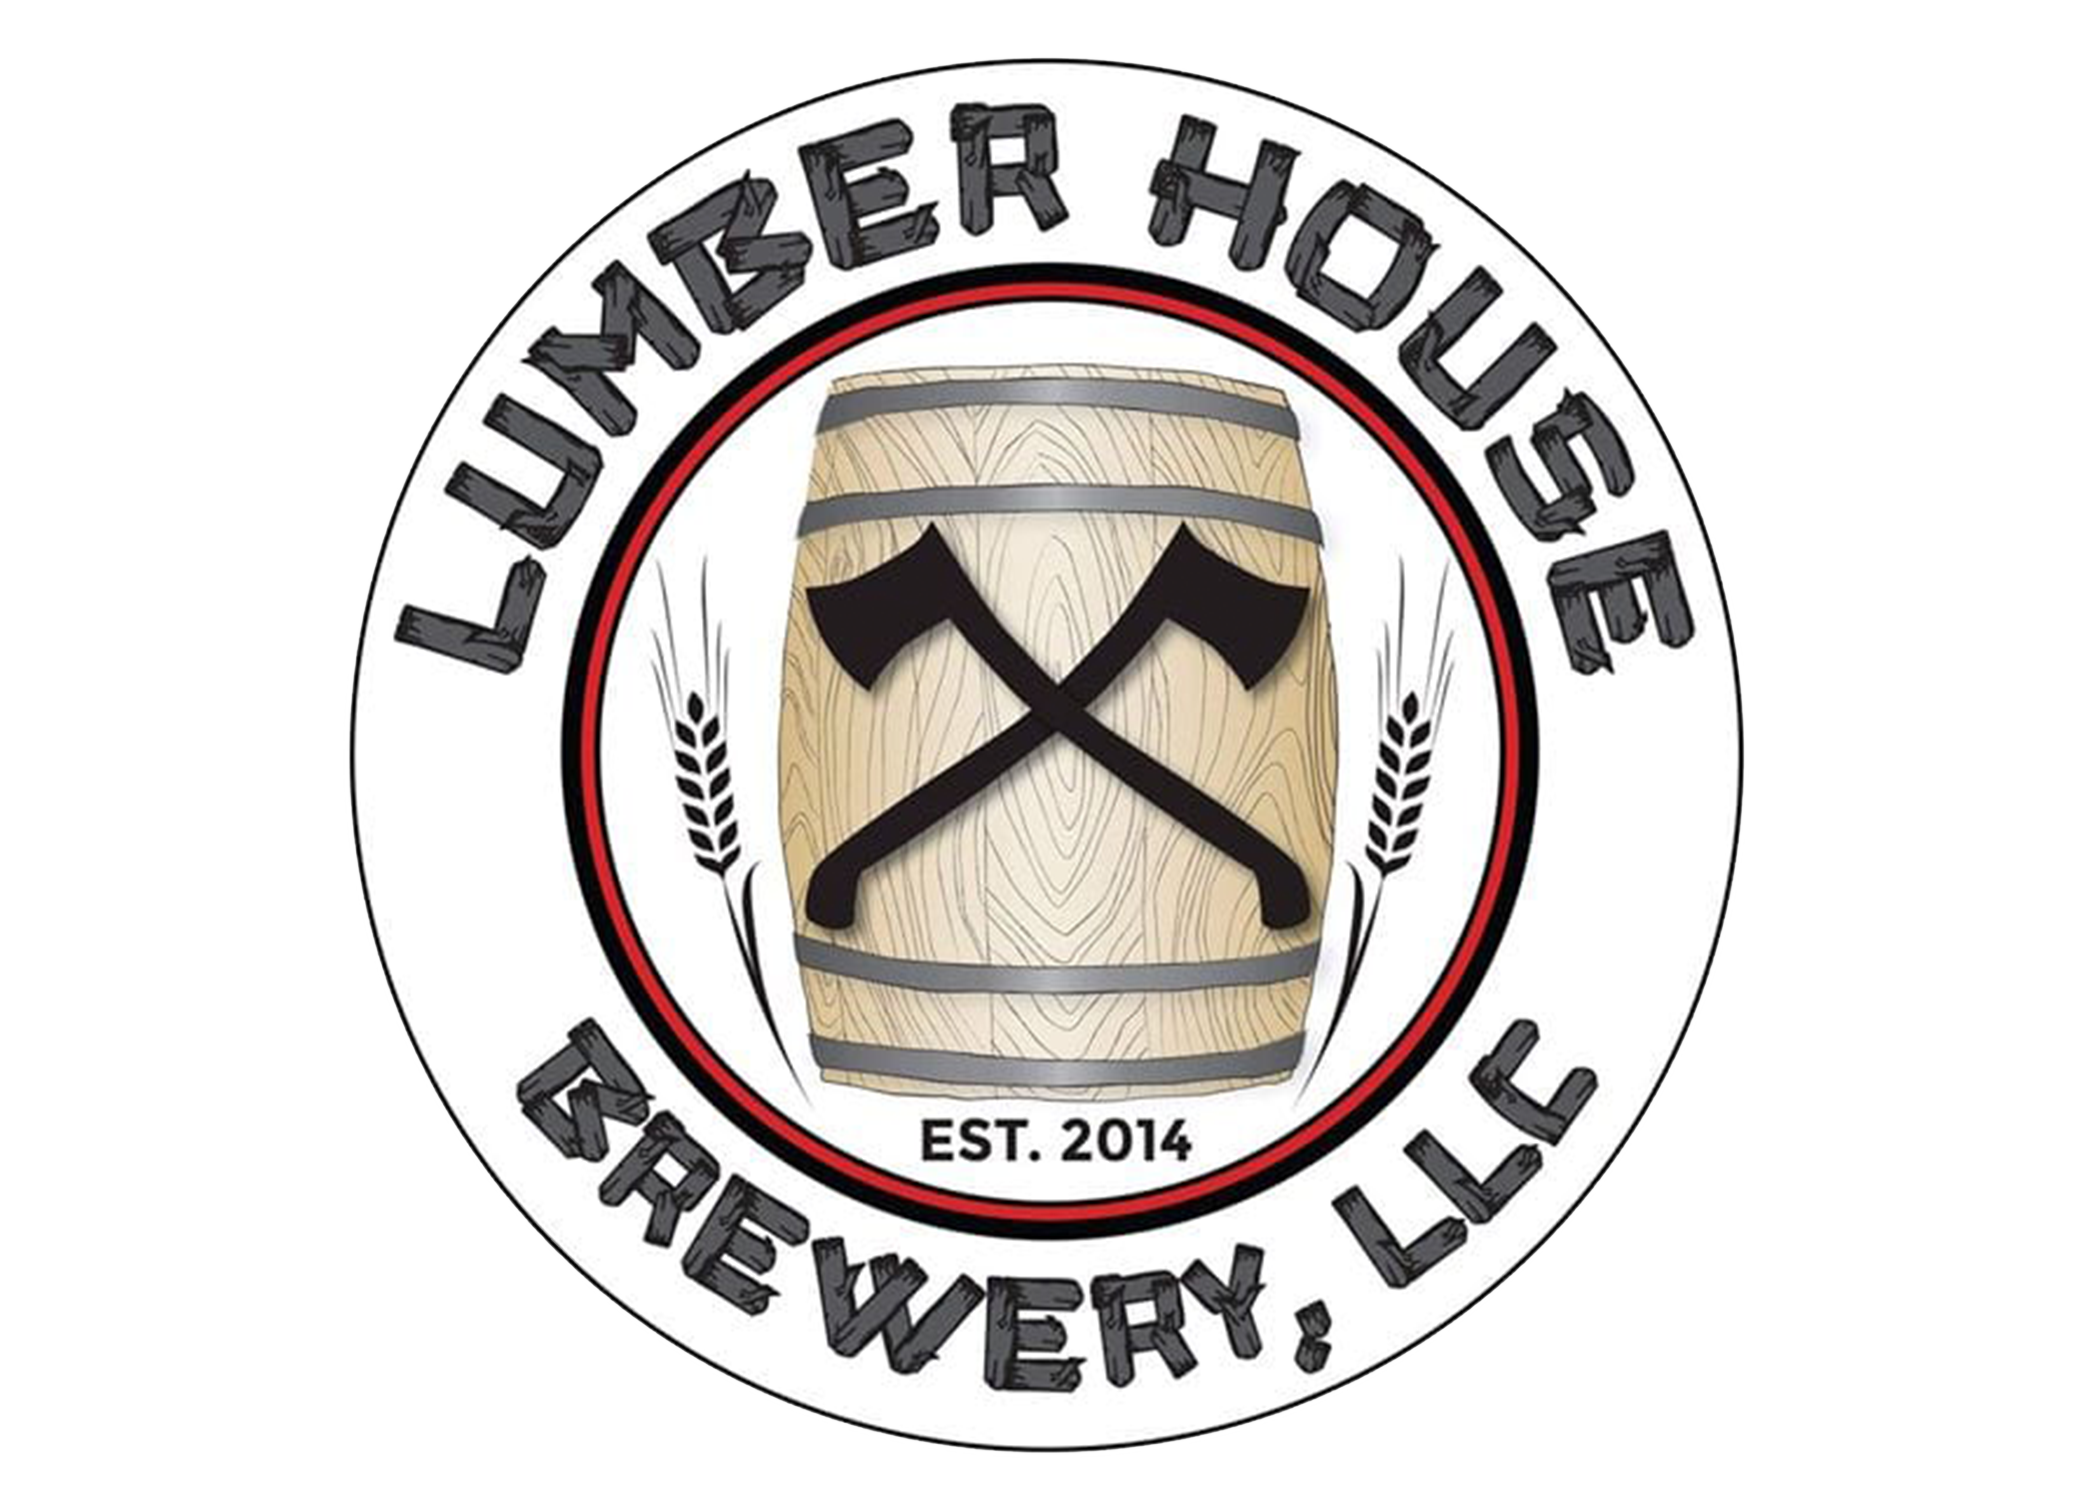 Lumber House Brewery, LLC